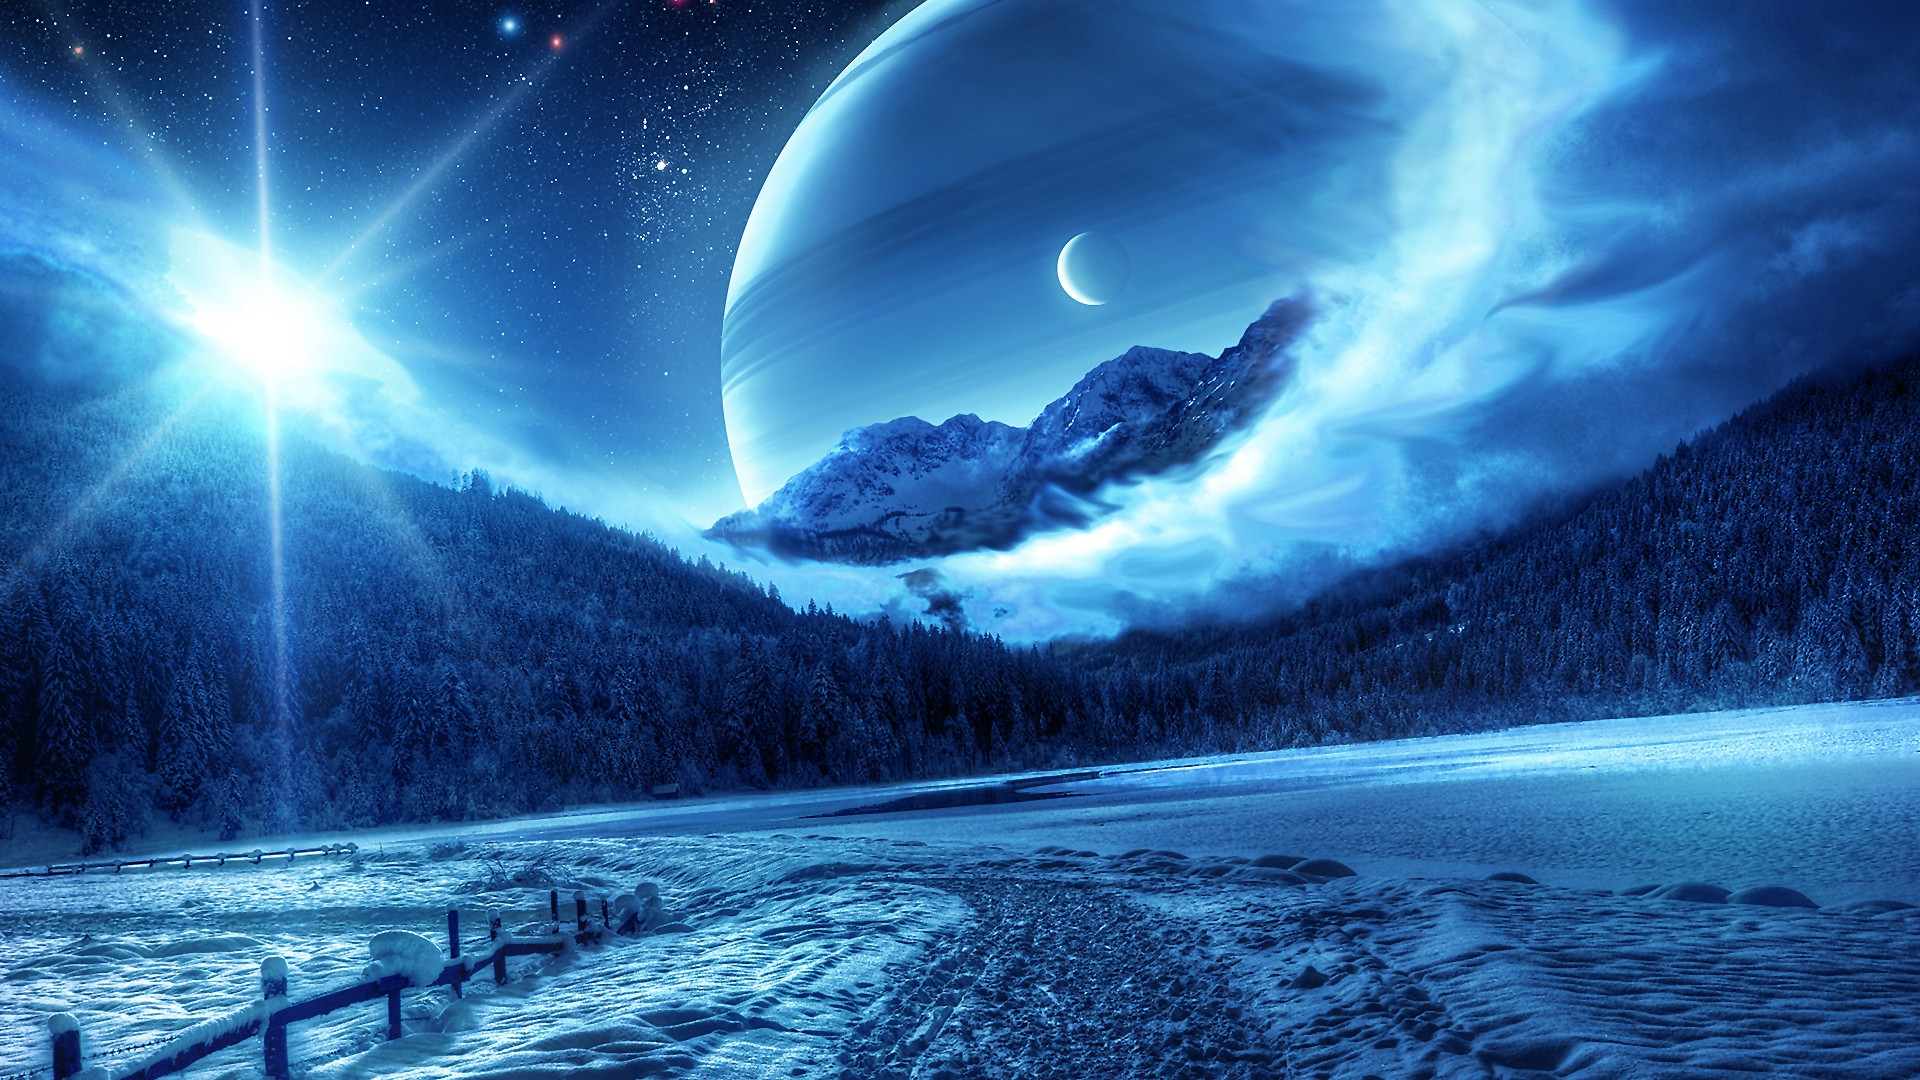 Blue Snowcapped Serenity Wallpaper